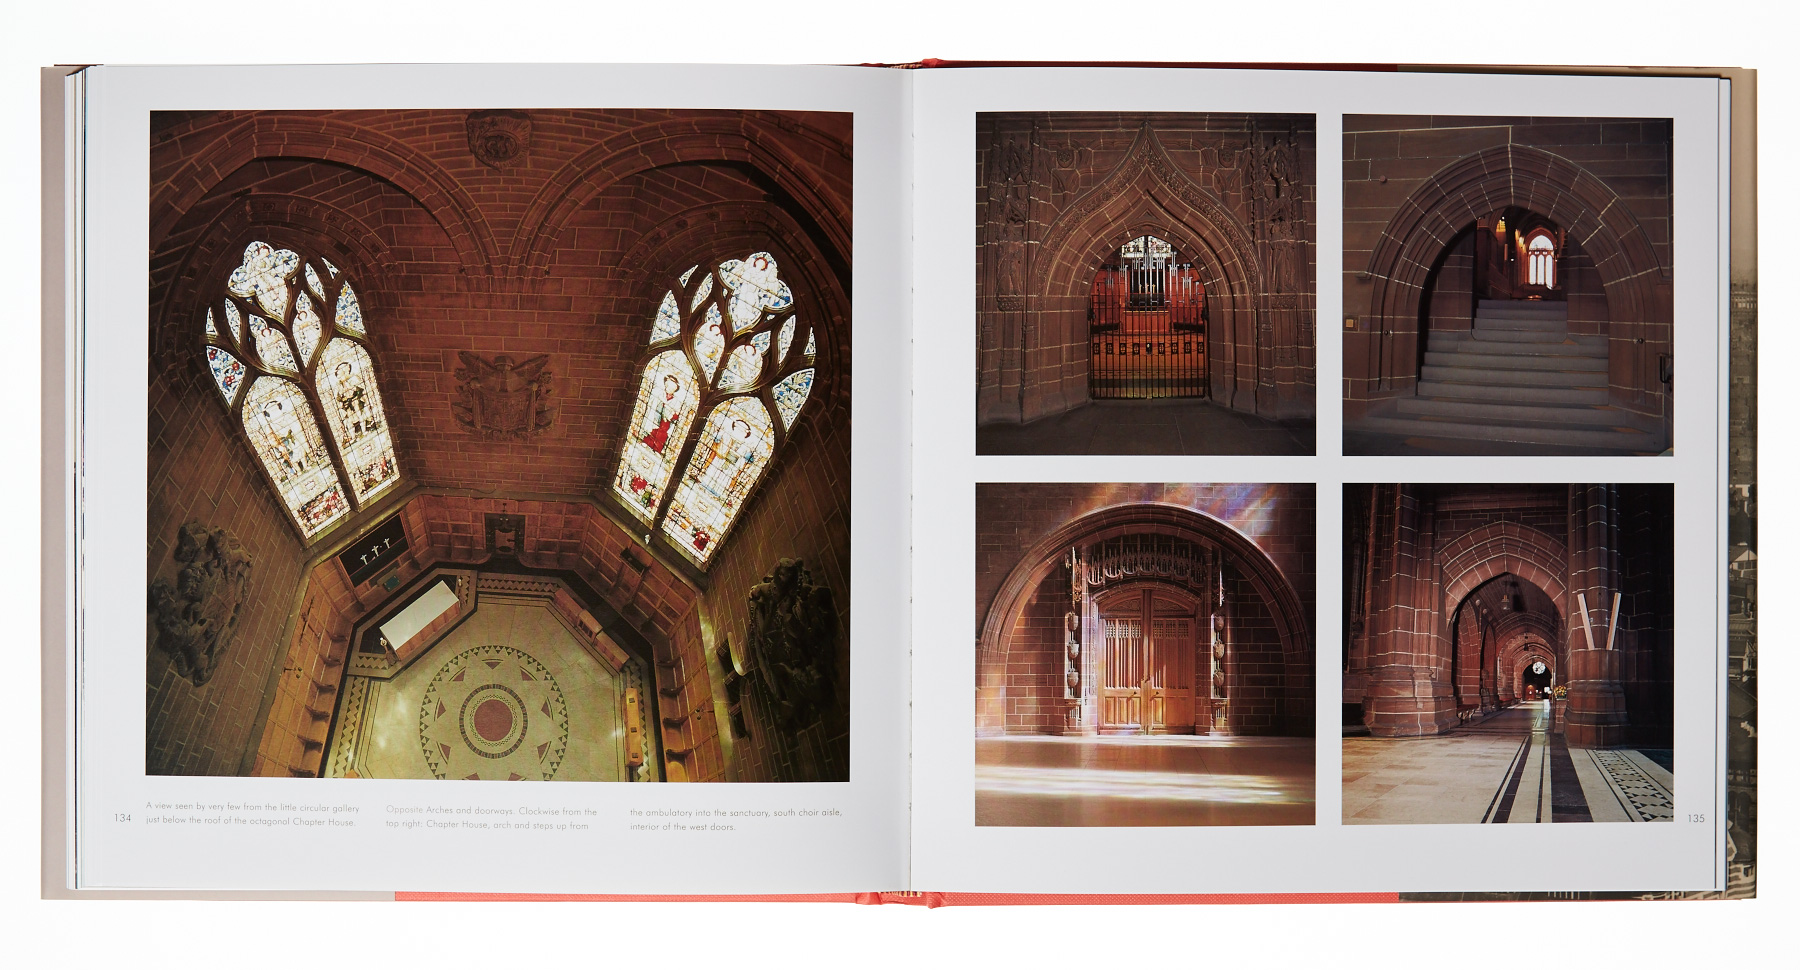 liverpool-cathedral-book-page-134.jpg